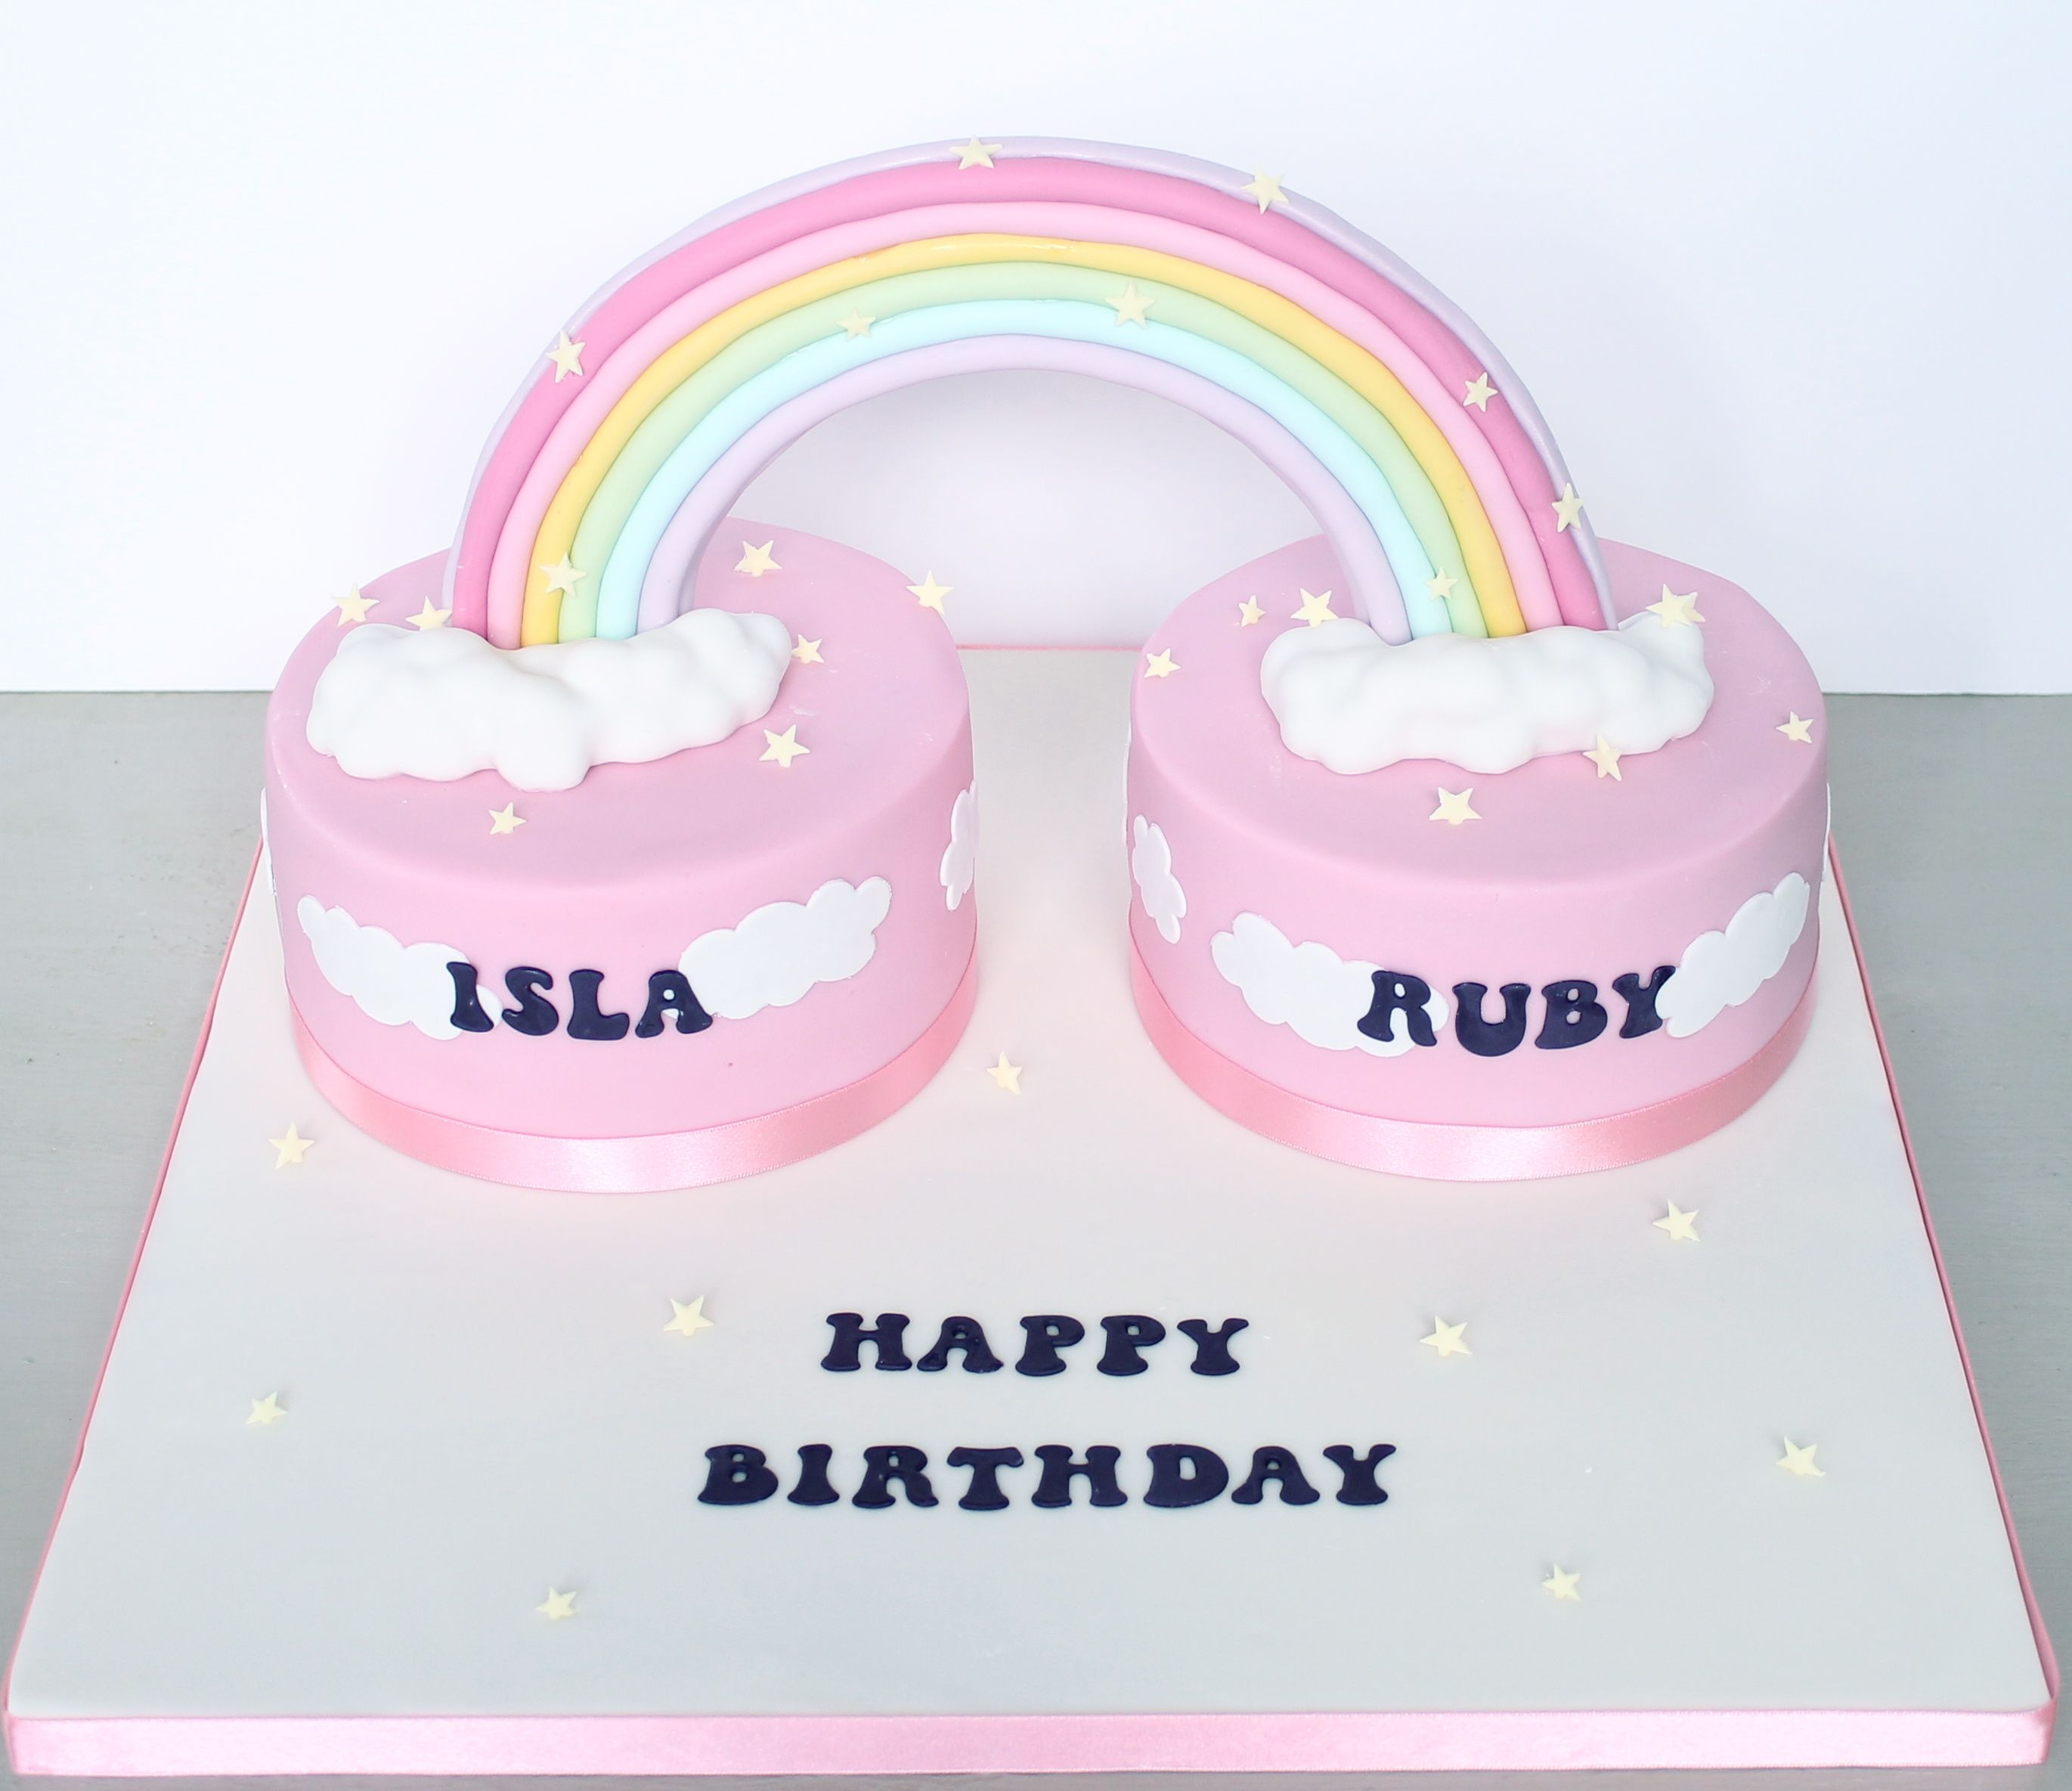 Twin Birthday Cakes Double Rainbow Cake Perfect For Twins Sweetie Darling Cakes